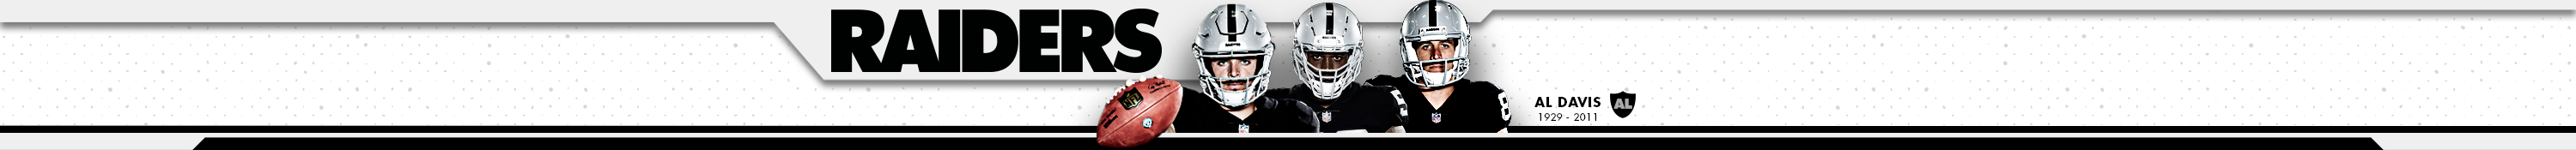 Raiders.com Website Header